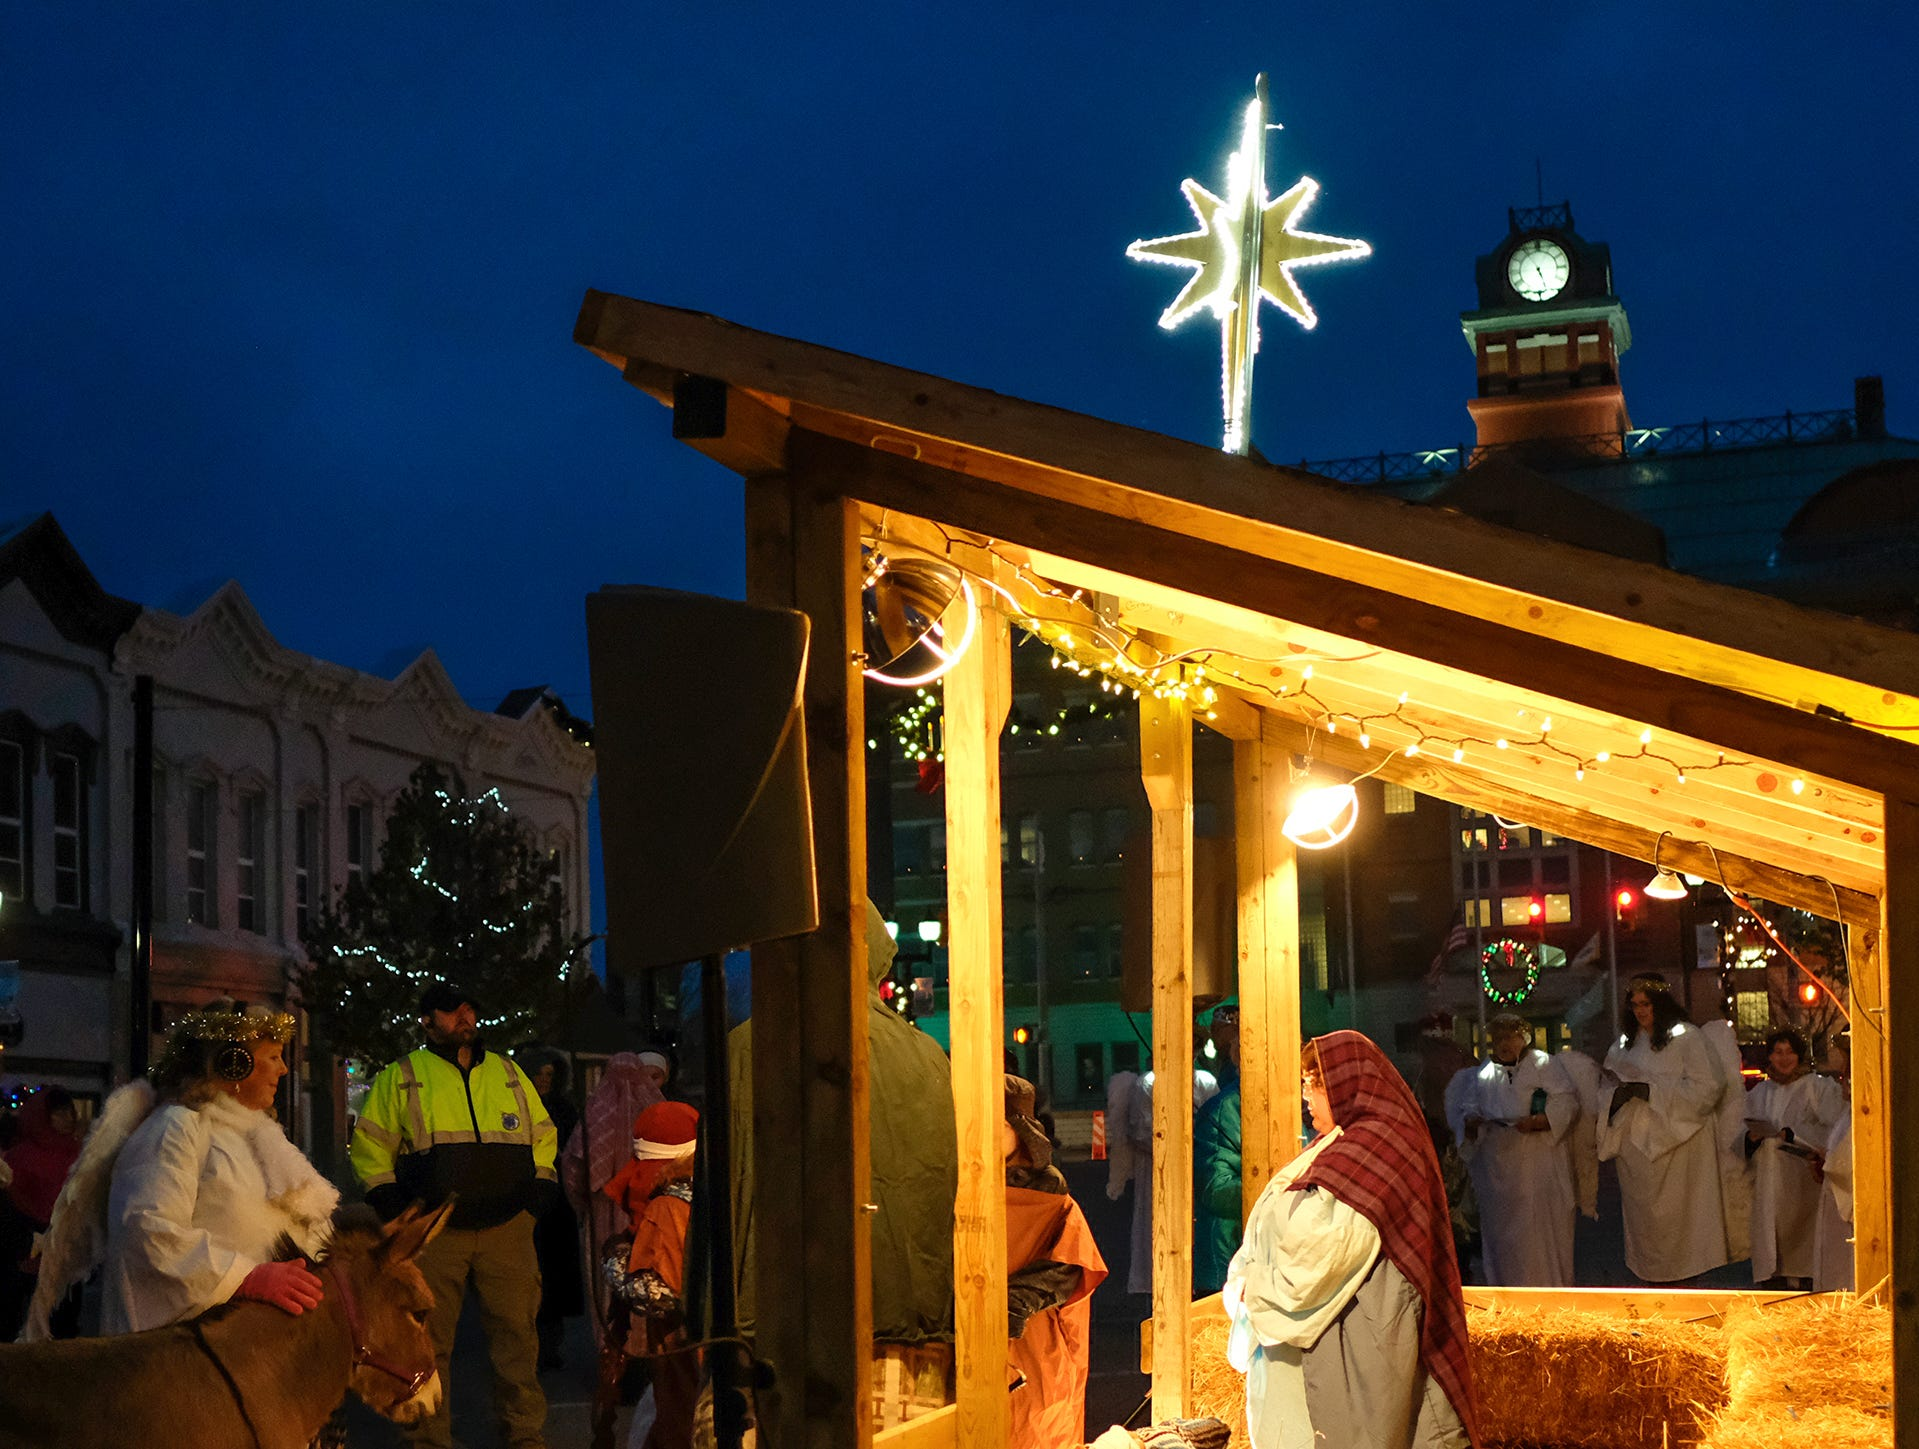 A nativity scene is played out in the Annual Festival of Lights and Santa Parade event in downtown St. Johns Friday, Dec, 7, 2018.